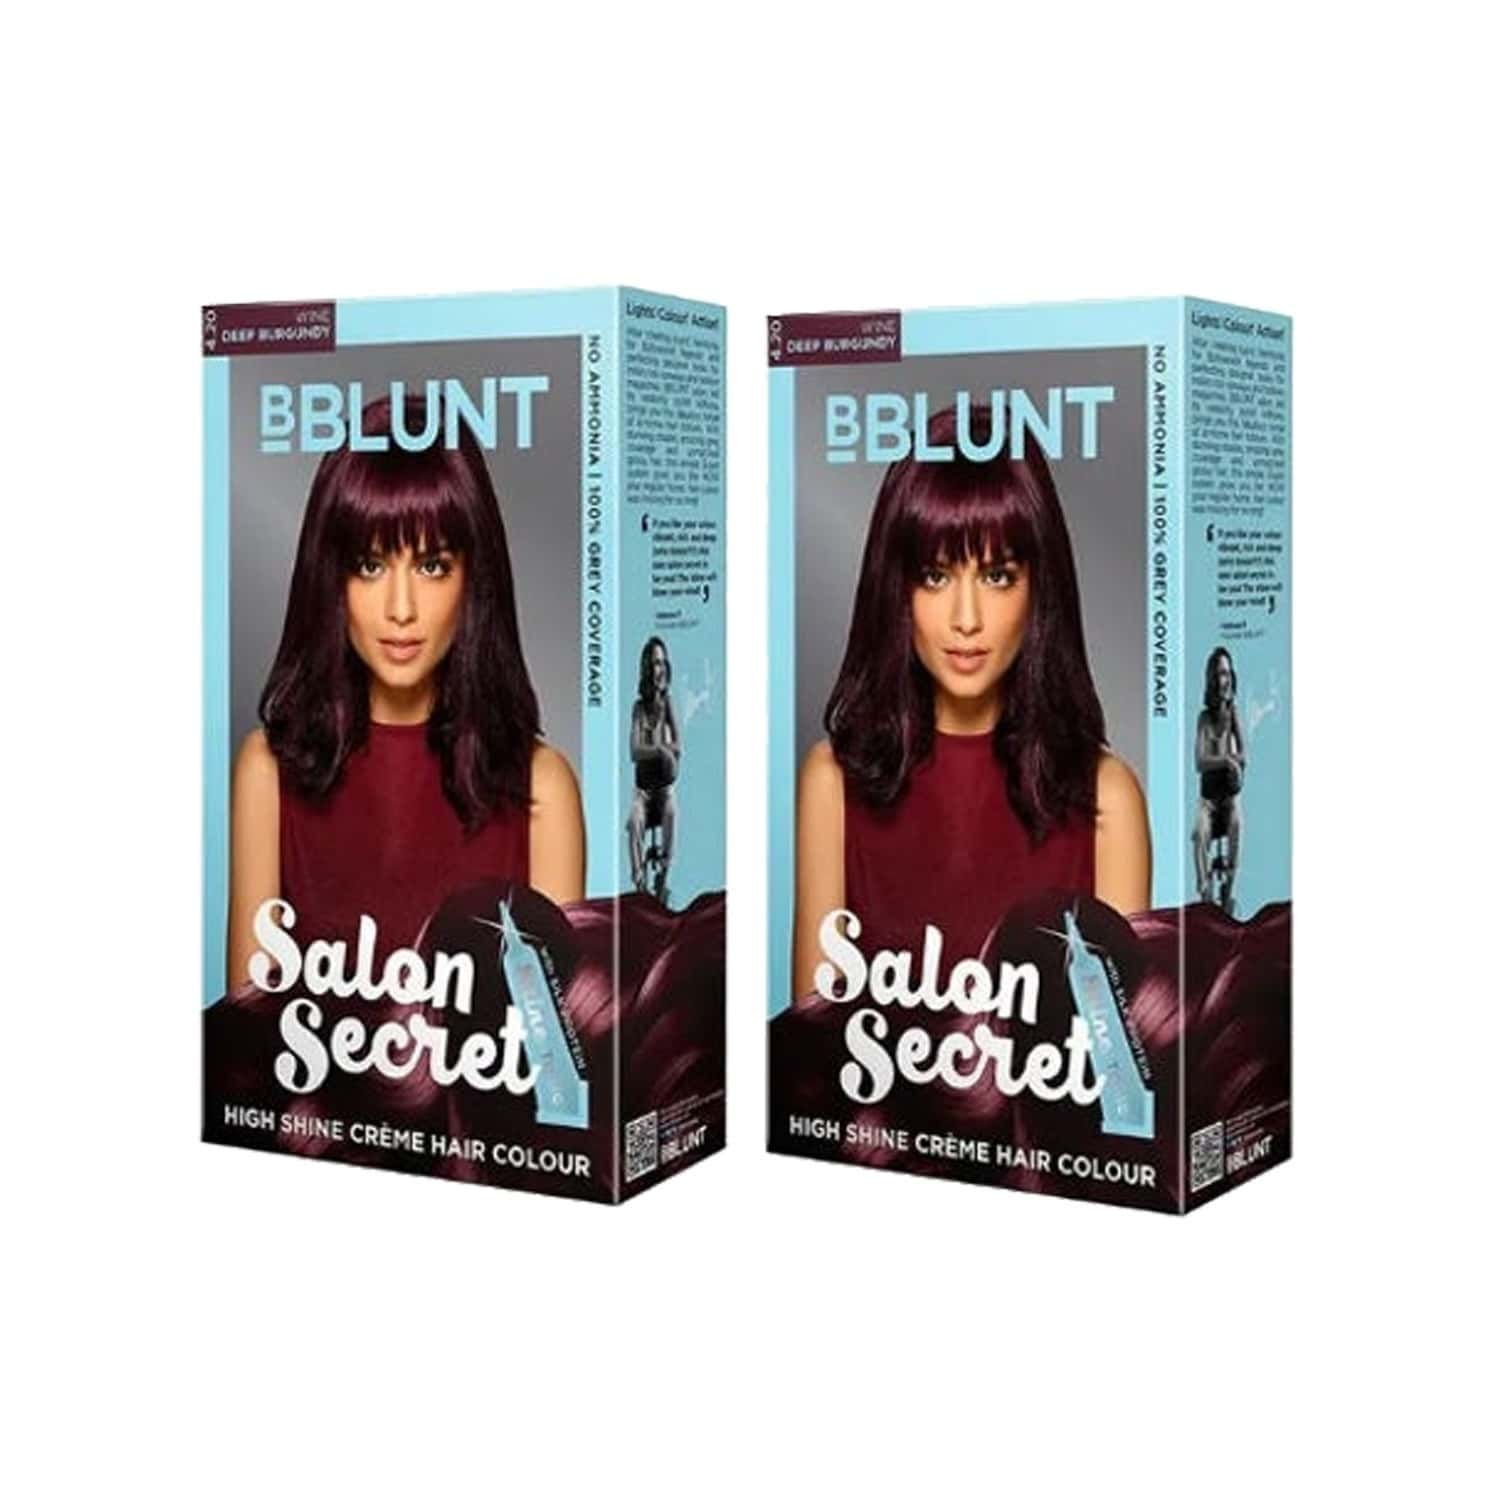 Bblunt Salon Secret High Shine Creme Hair Colour - Wine Deep Burgundy 4.20 Combo